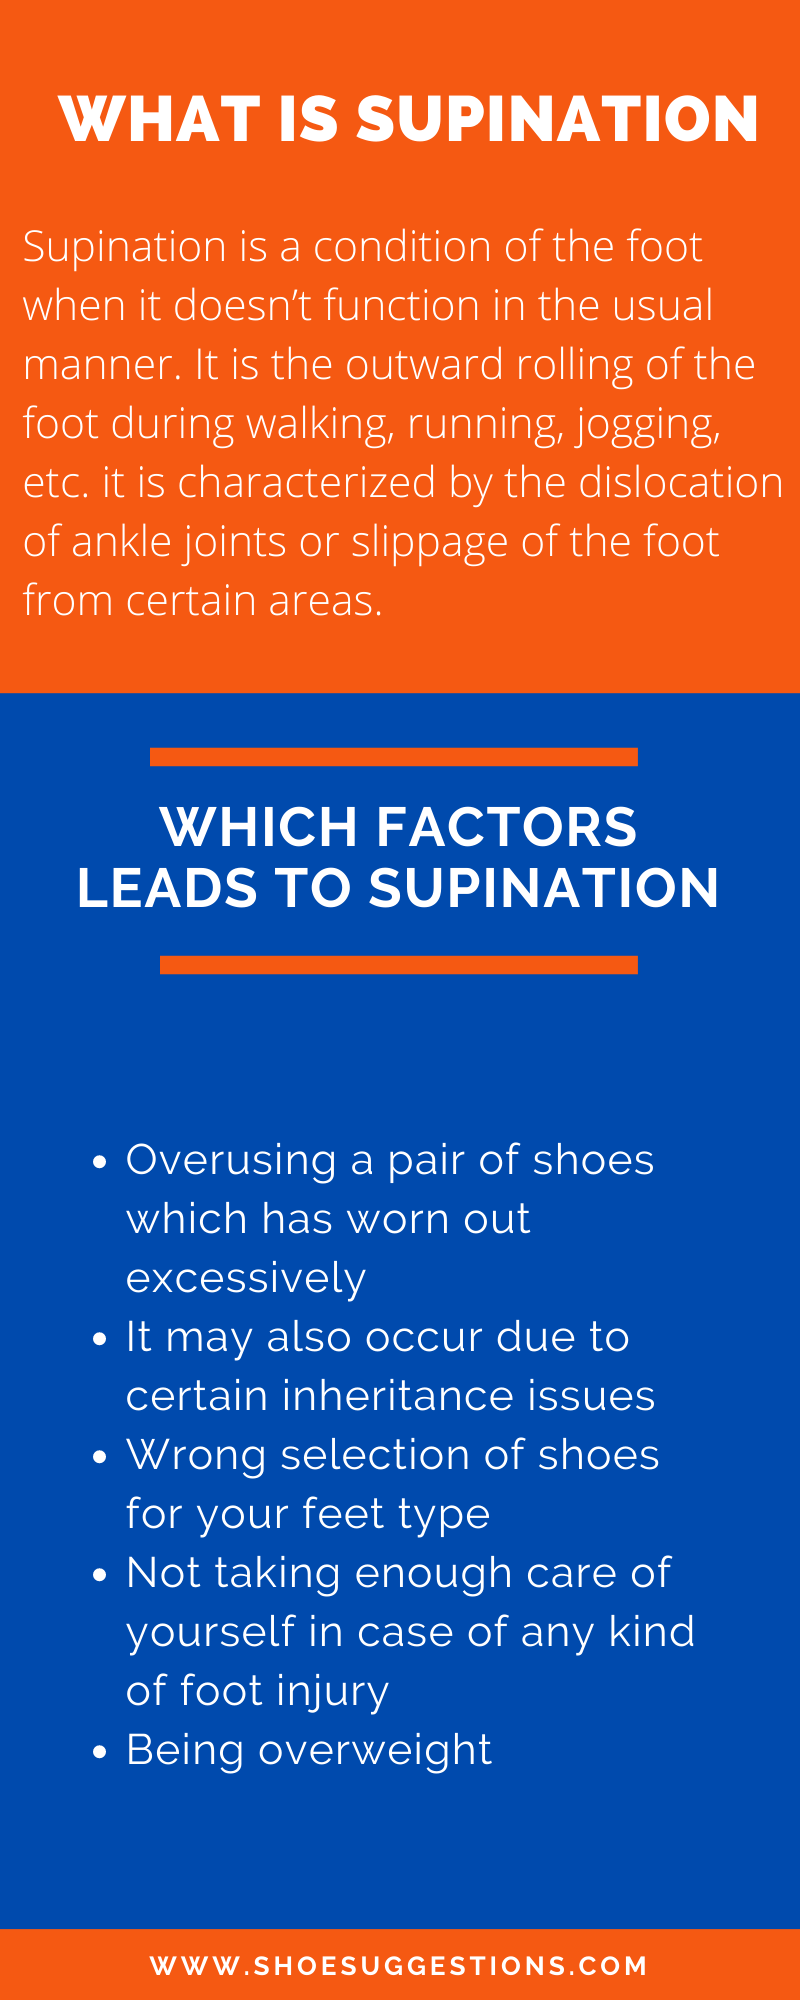 Which factors lead to supination